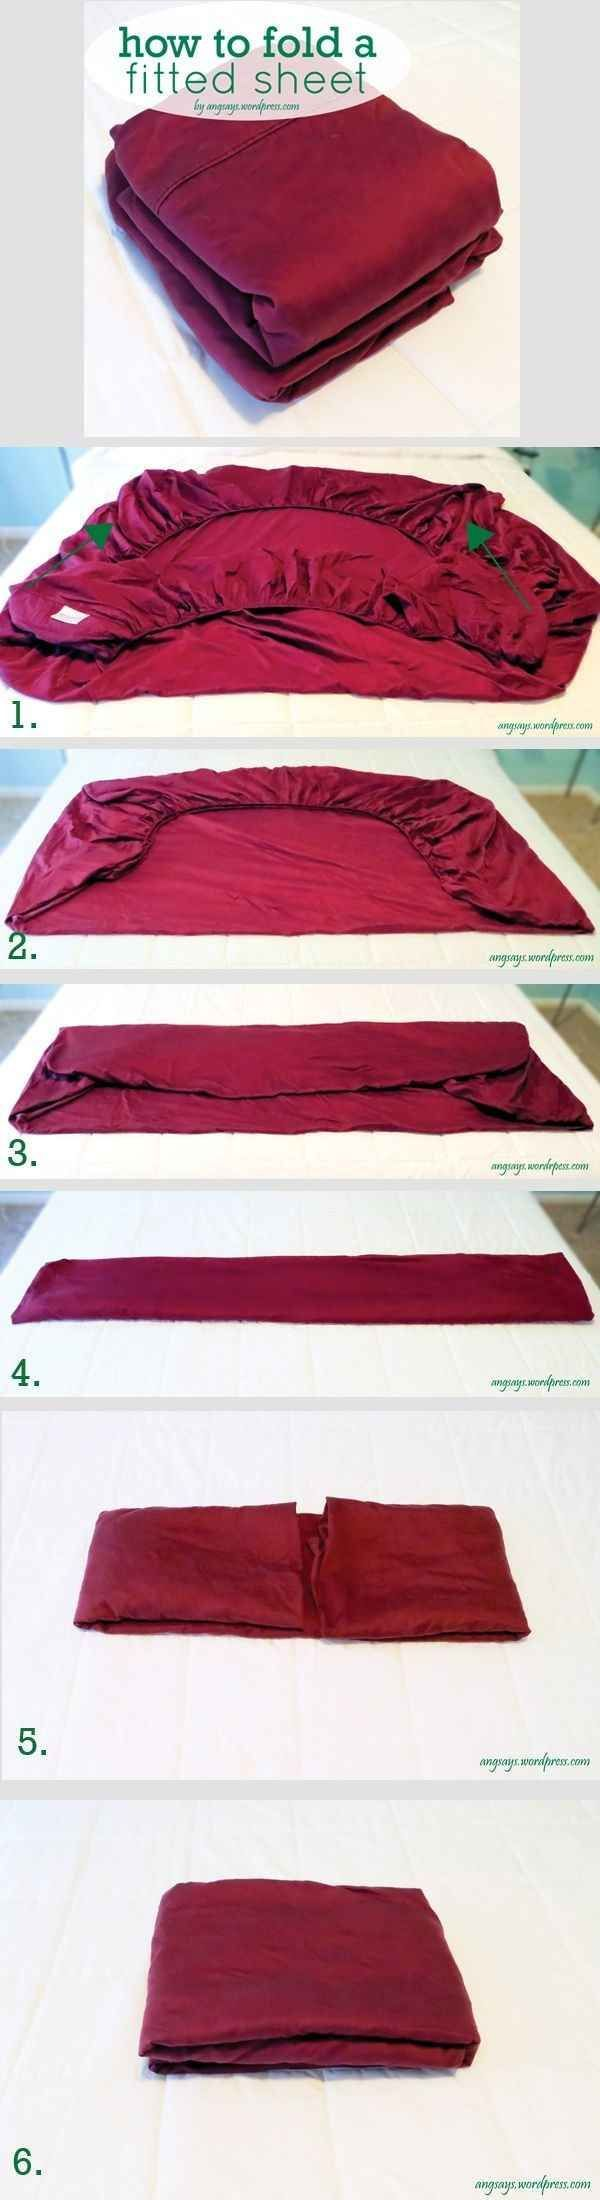 25 Tutorials To Teach You To Fold Things Like An Actual Adult (scheduled via http://www.tailwindapp.com?utm_source=pinterest&utm_medium=twpin&utm_content=post172463773&utm_campaign=scheduler_attribution)